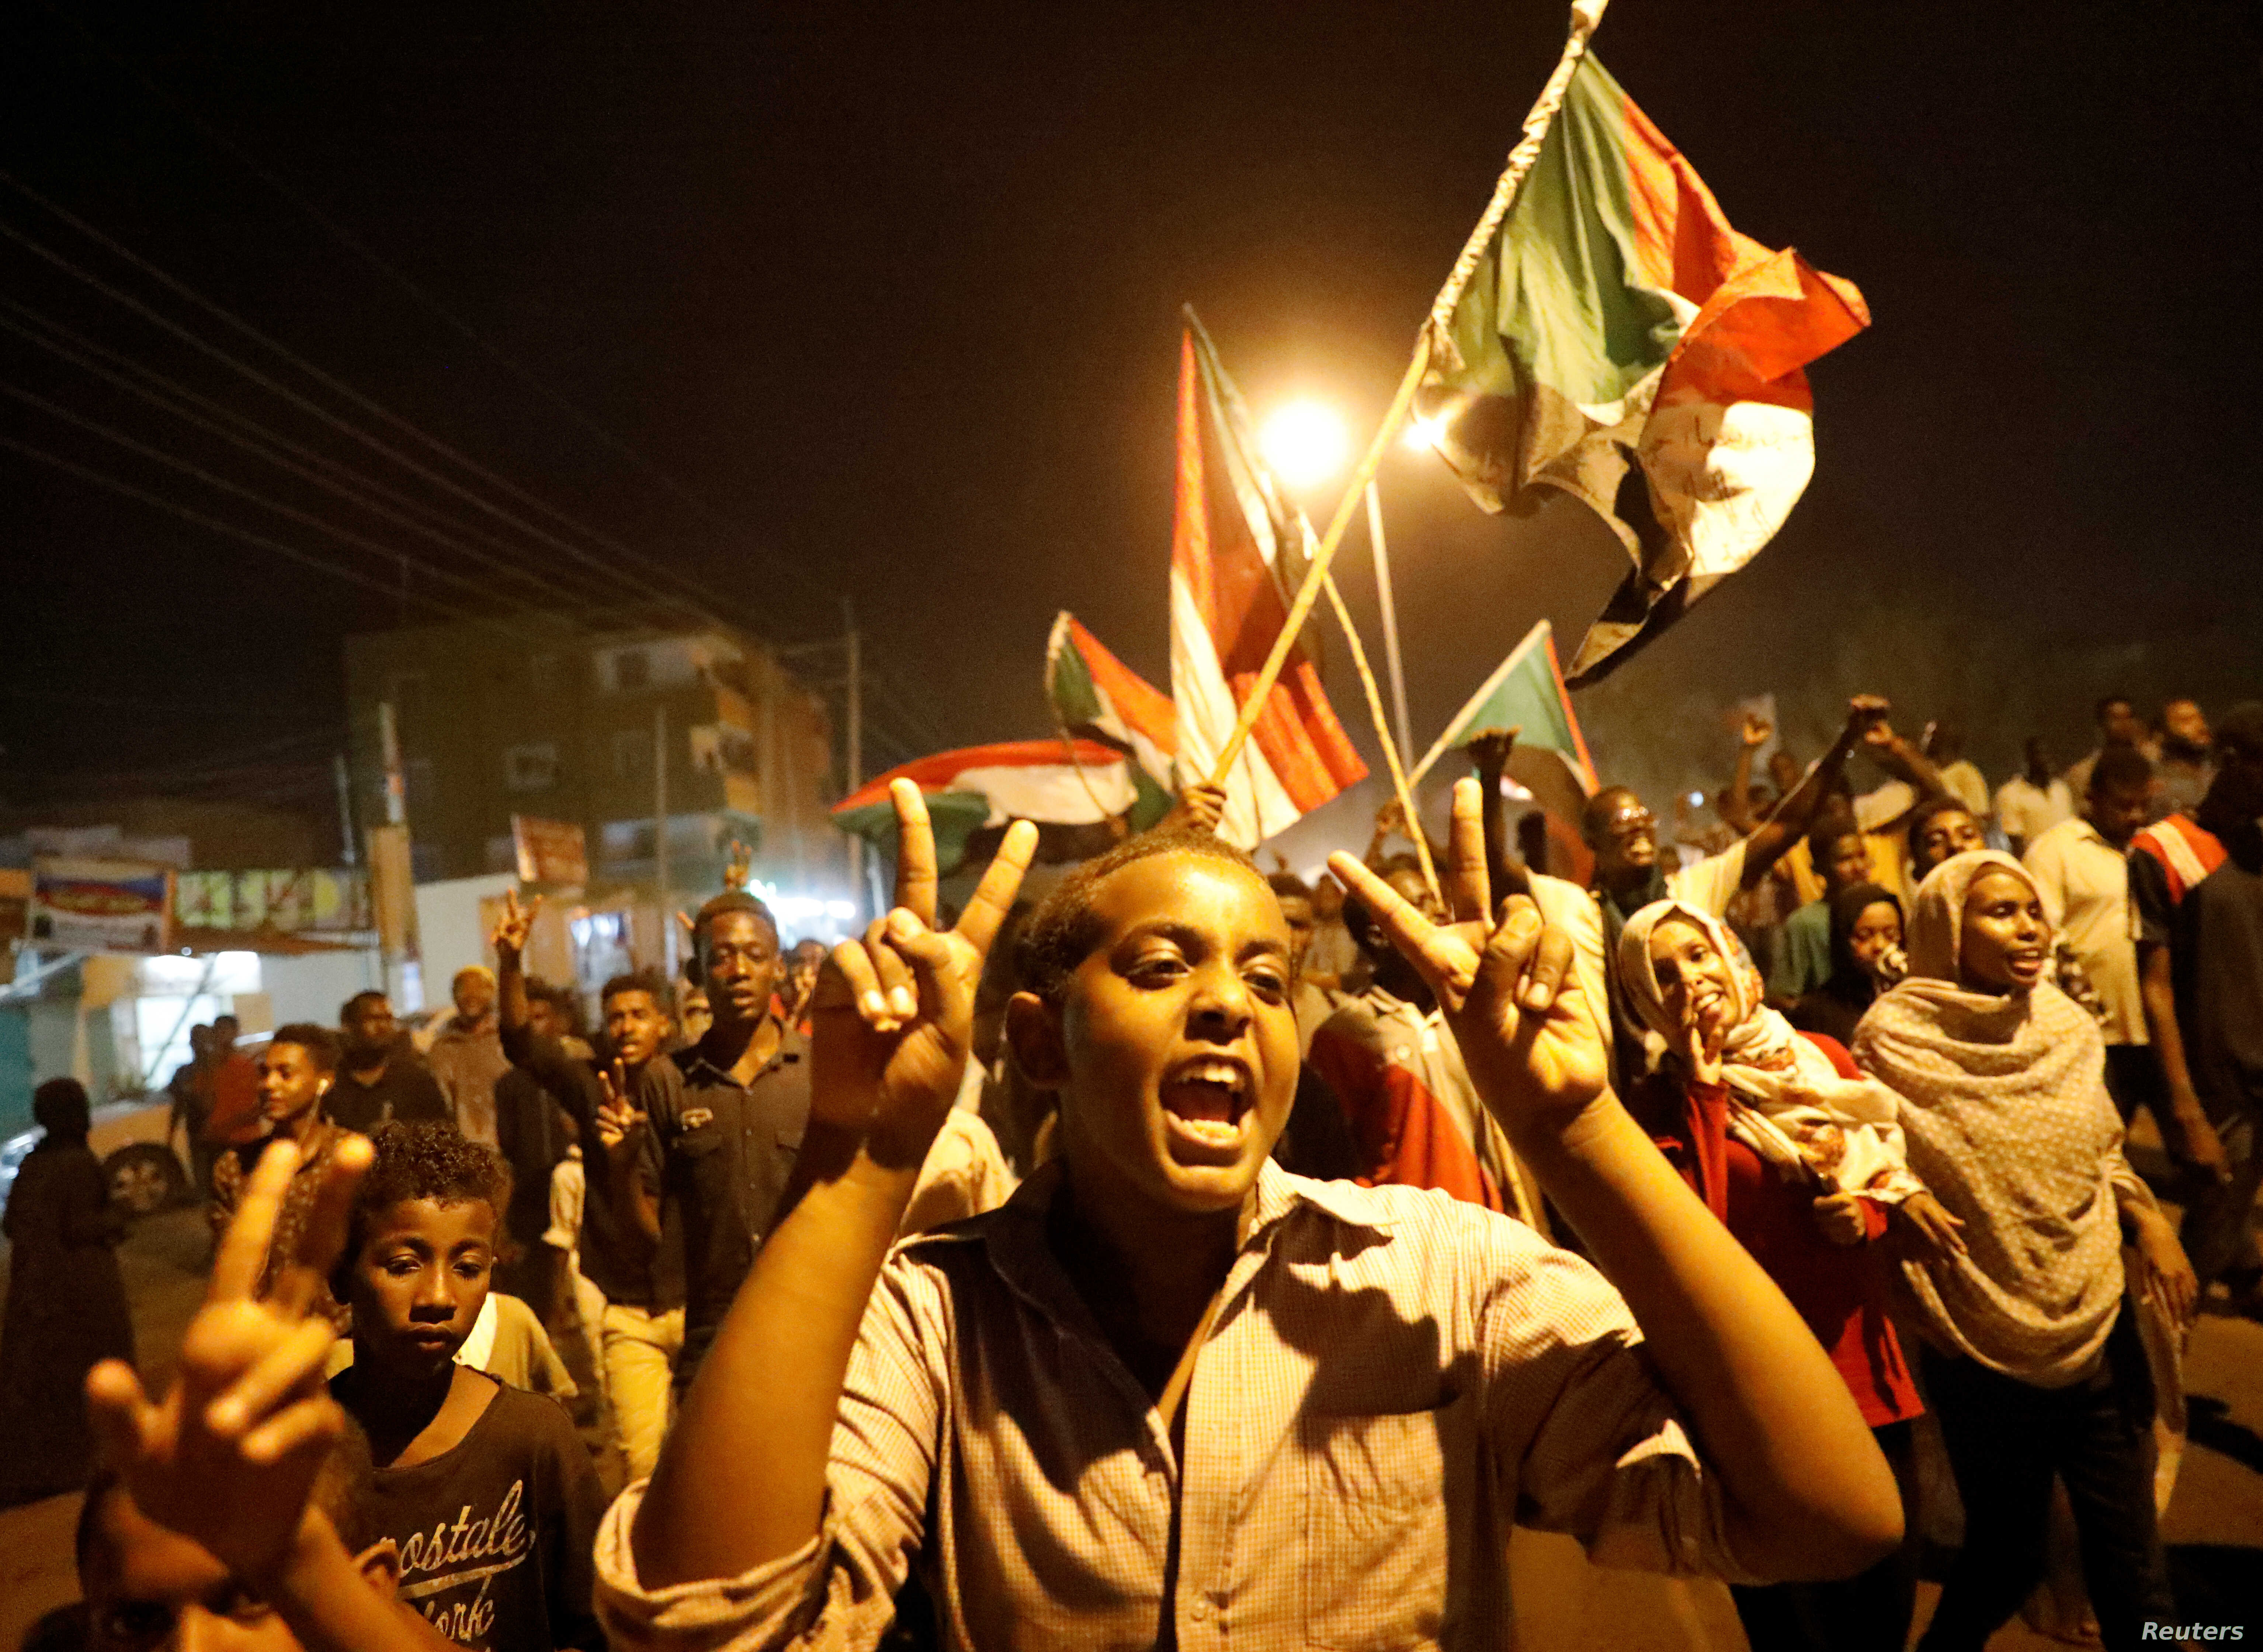 Sudan's Protesters Accept Roadmap for Civilian Rule | Voice of ... on damascus road map, prague road map, lagos road map, kathmandu road map, santo domingo road map, karachi road map, francistown road map, addis ababa road map, south sudan road map, dar es salaam road map, nairobi road map, havana road map, alexandria road map, manzini road map, muscat road map, baghdad road map, moscow road map, africa road map, islamabad road map, madrid road map,